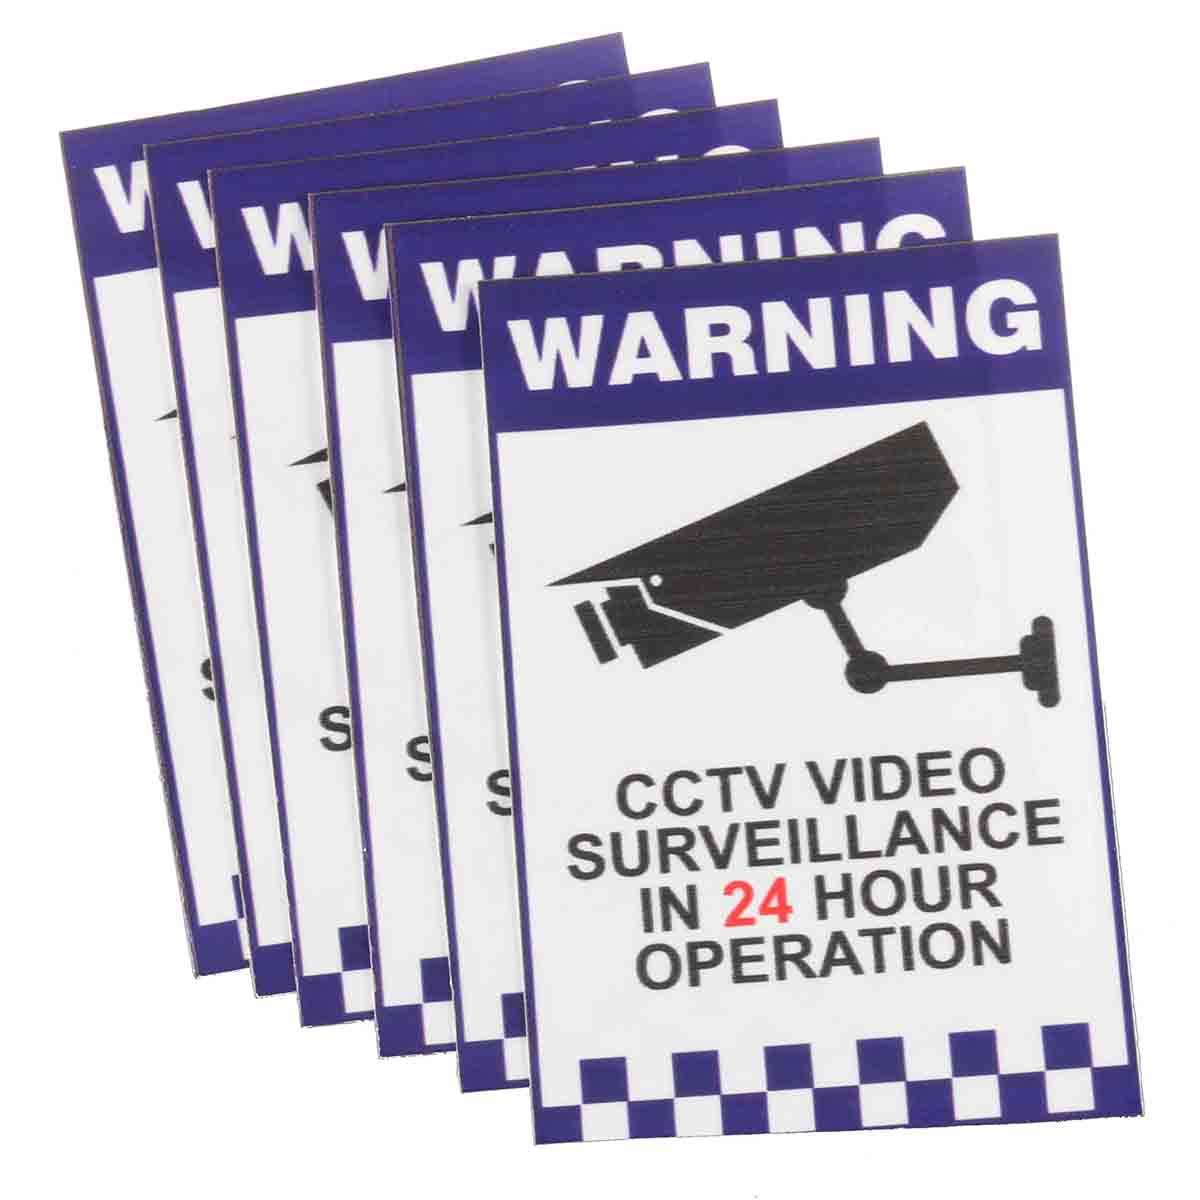 NEW Safurance 6x Warning CCTV Security Surveillance Camera Sign Warning Decal Sticker 66x100mm Home Security Safety